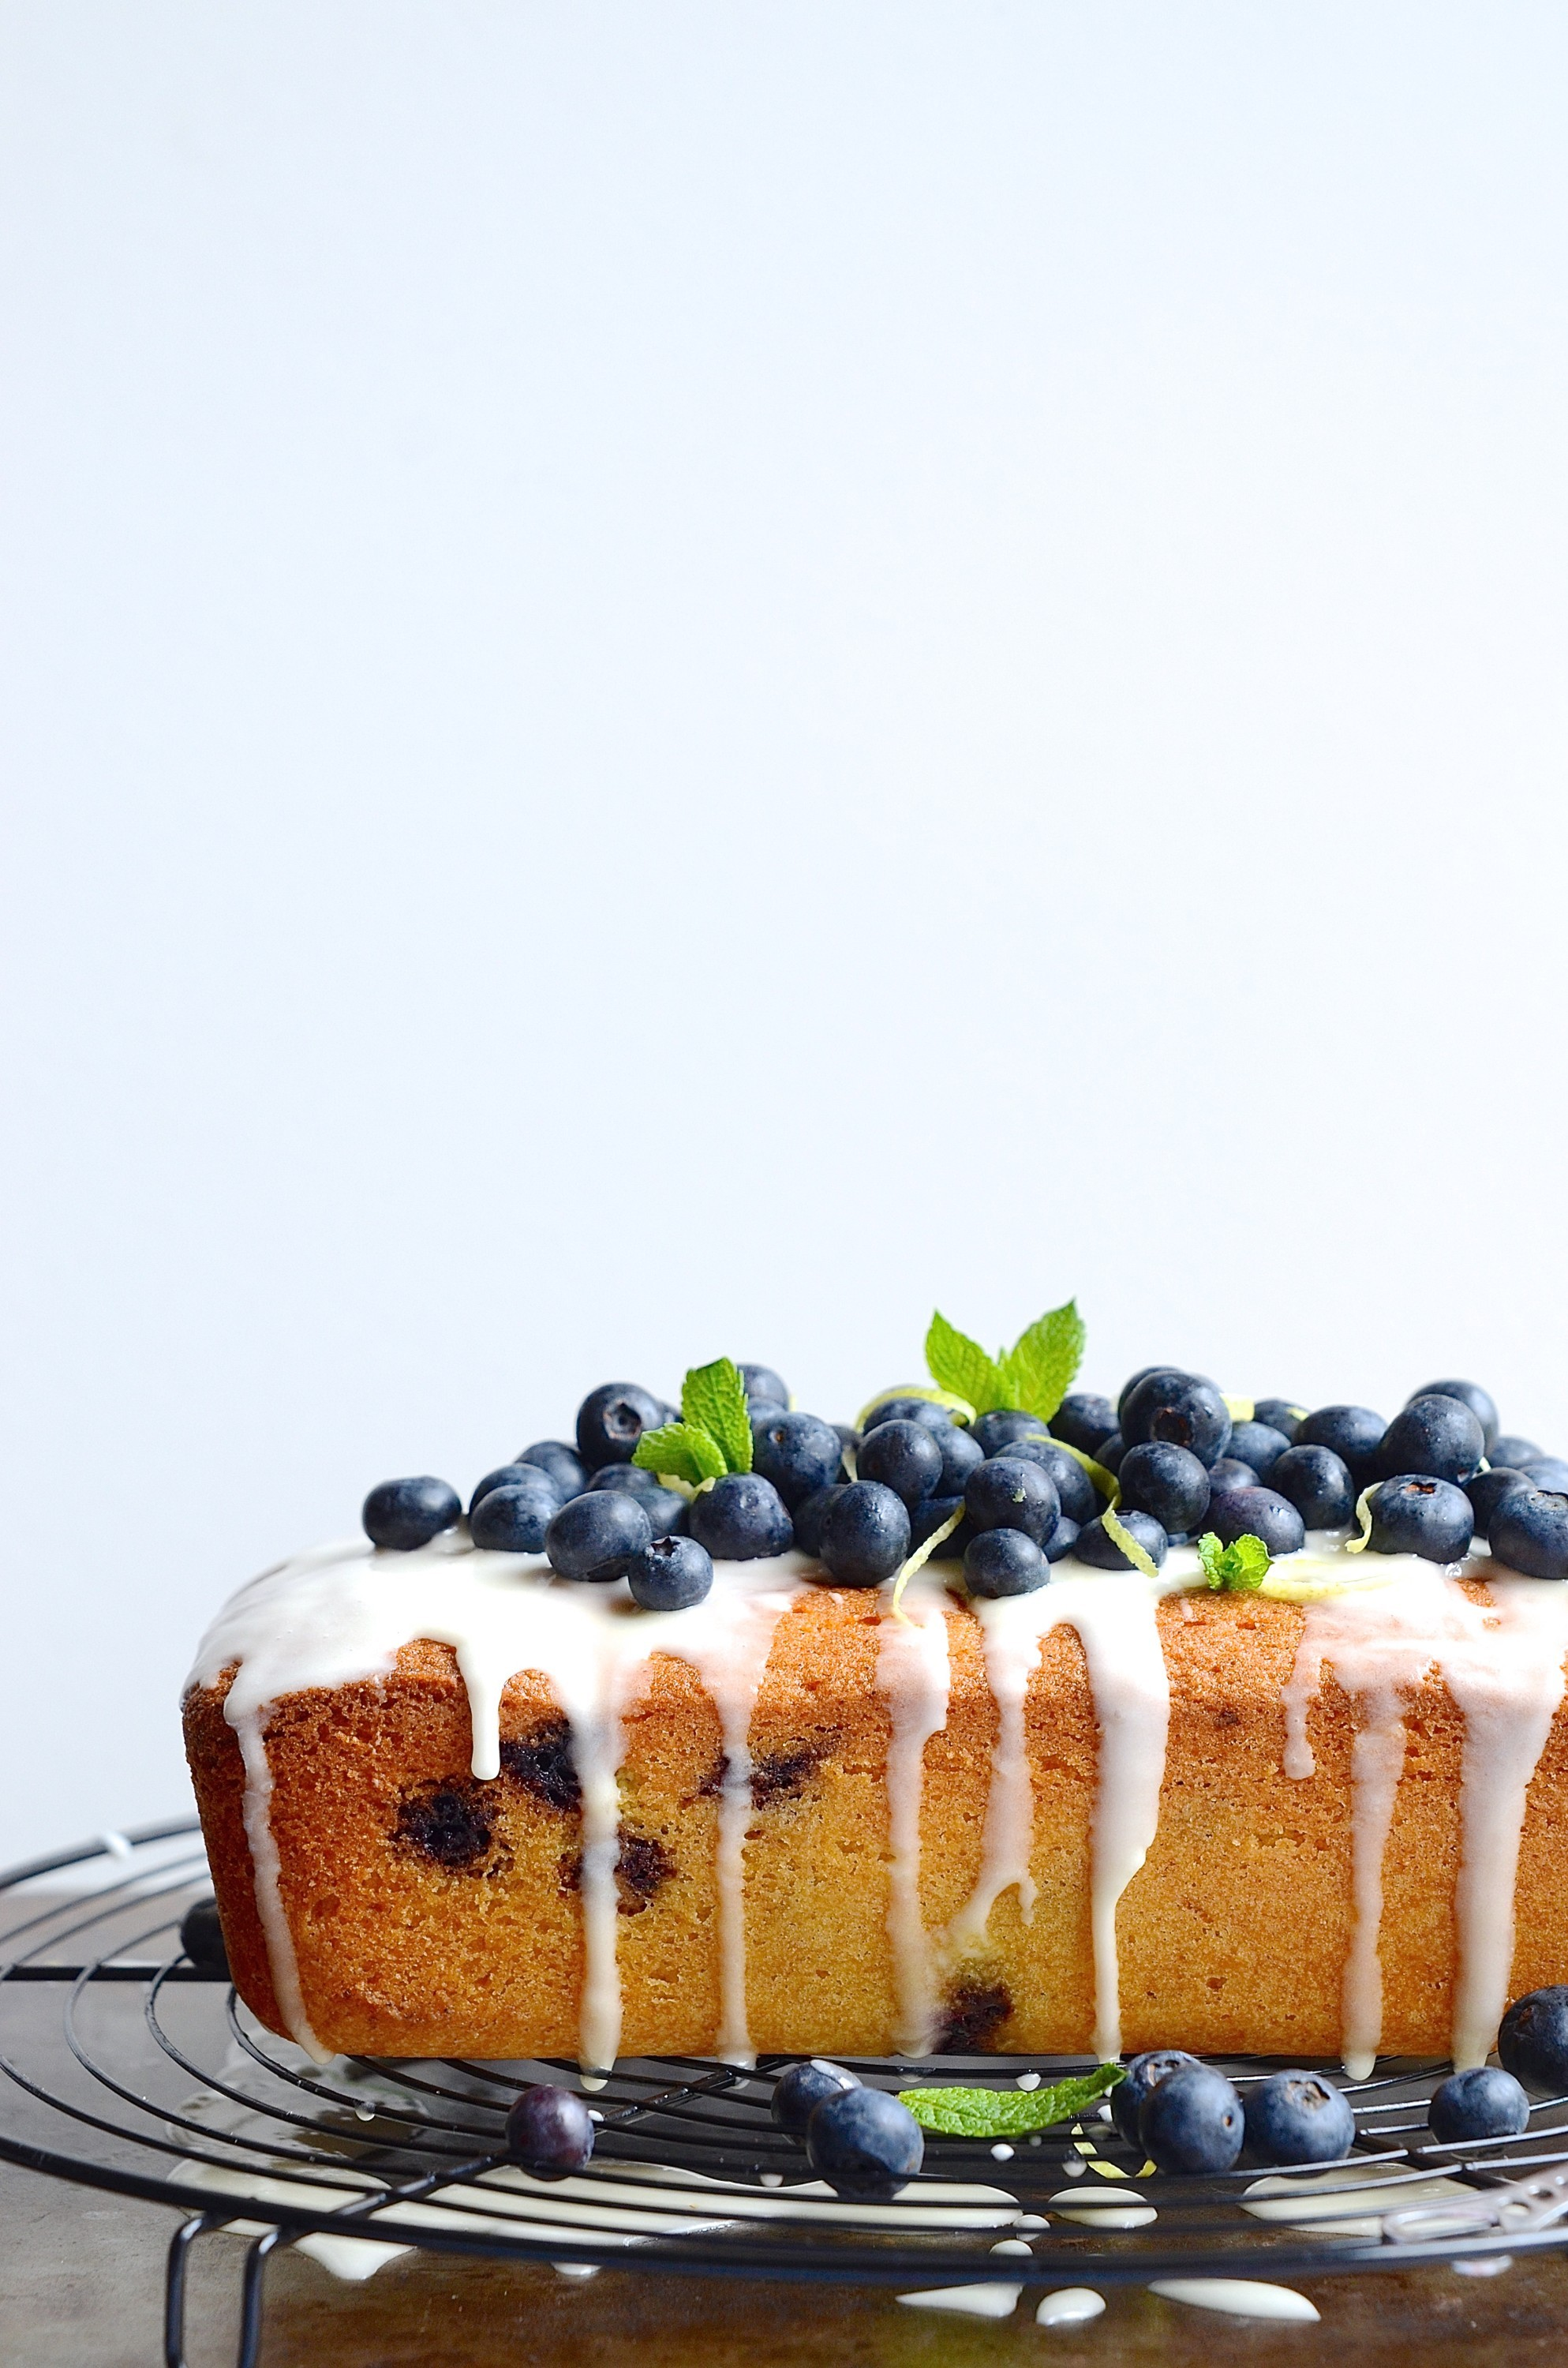 Cake Friday & Baking Archives | Page 7 of 8 | Bibby's Kitchen @ 36 | A food blog sharing recipes, stories and travel | Page 7